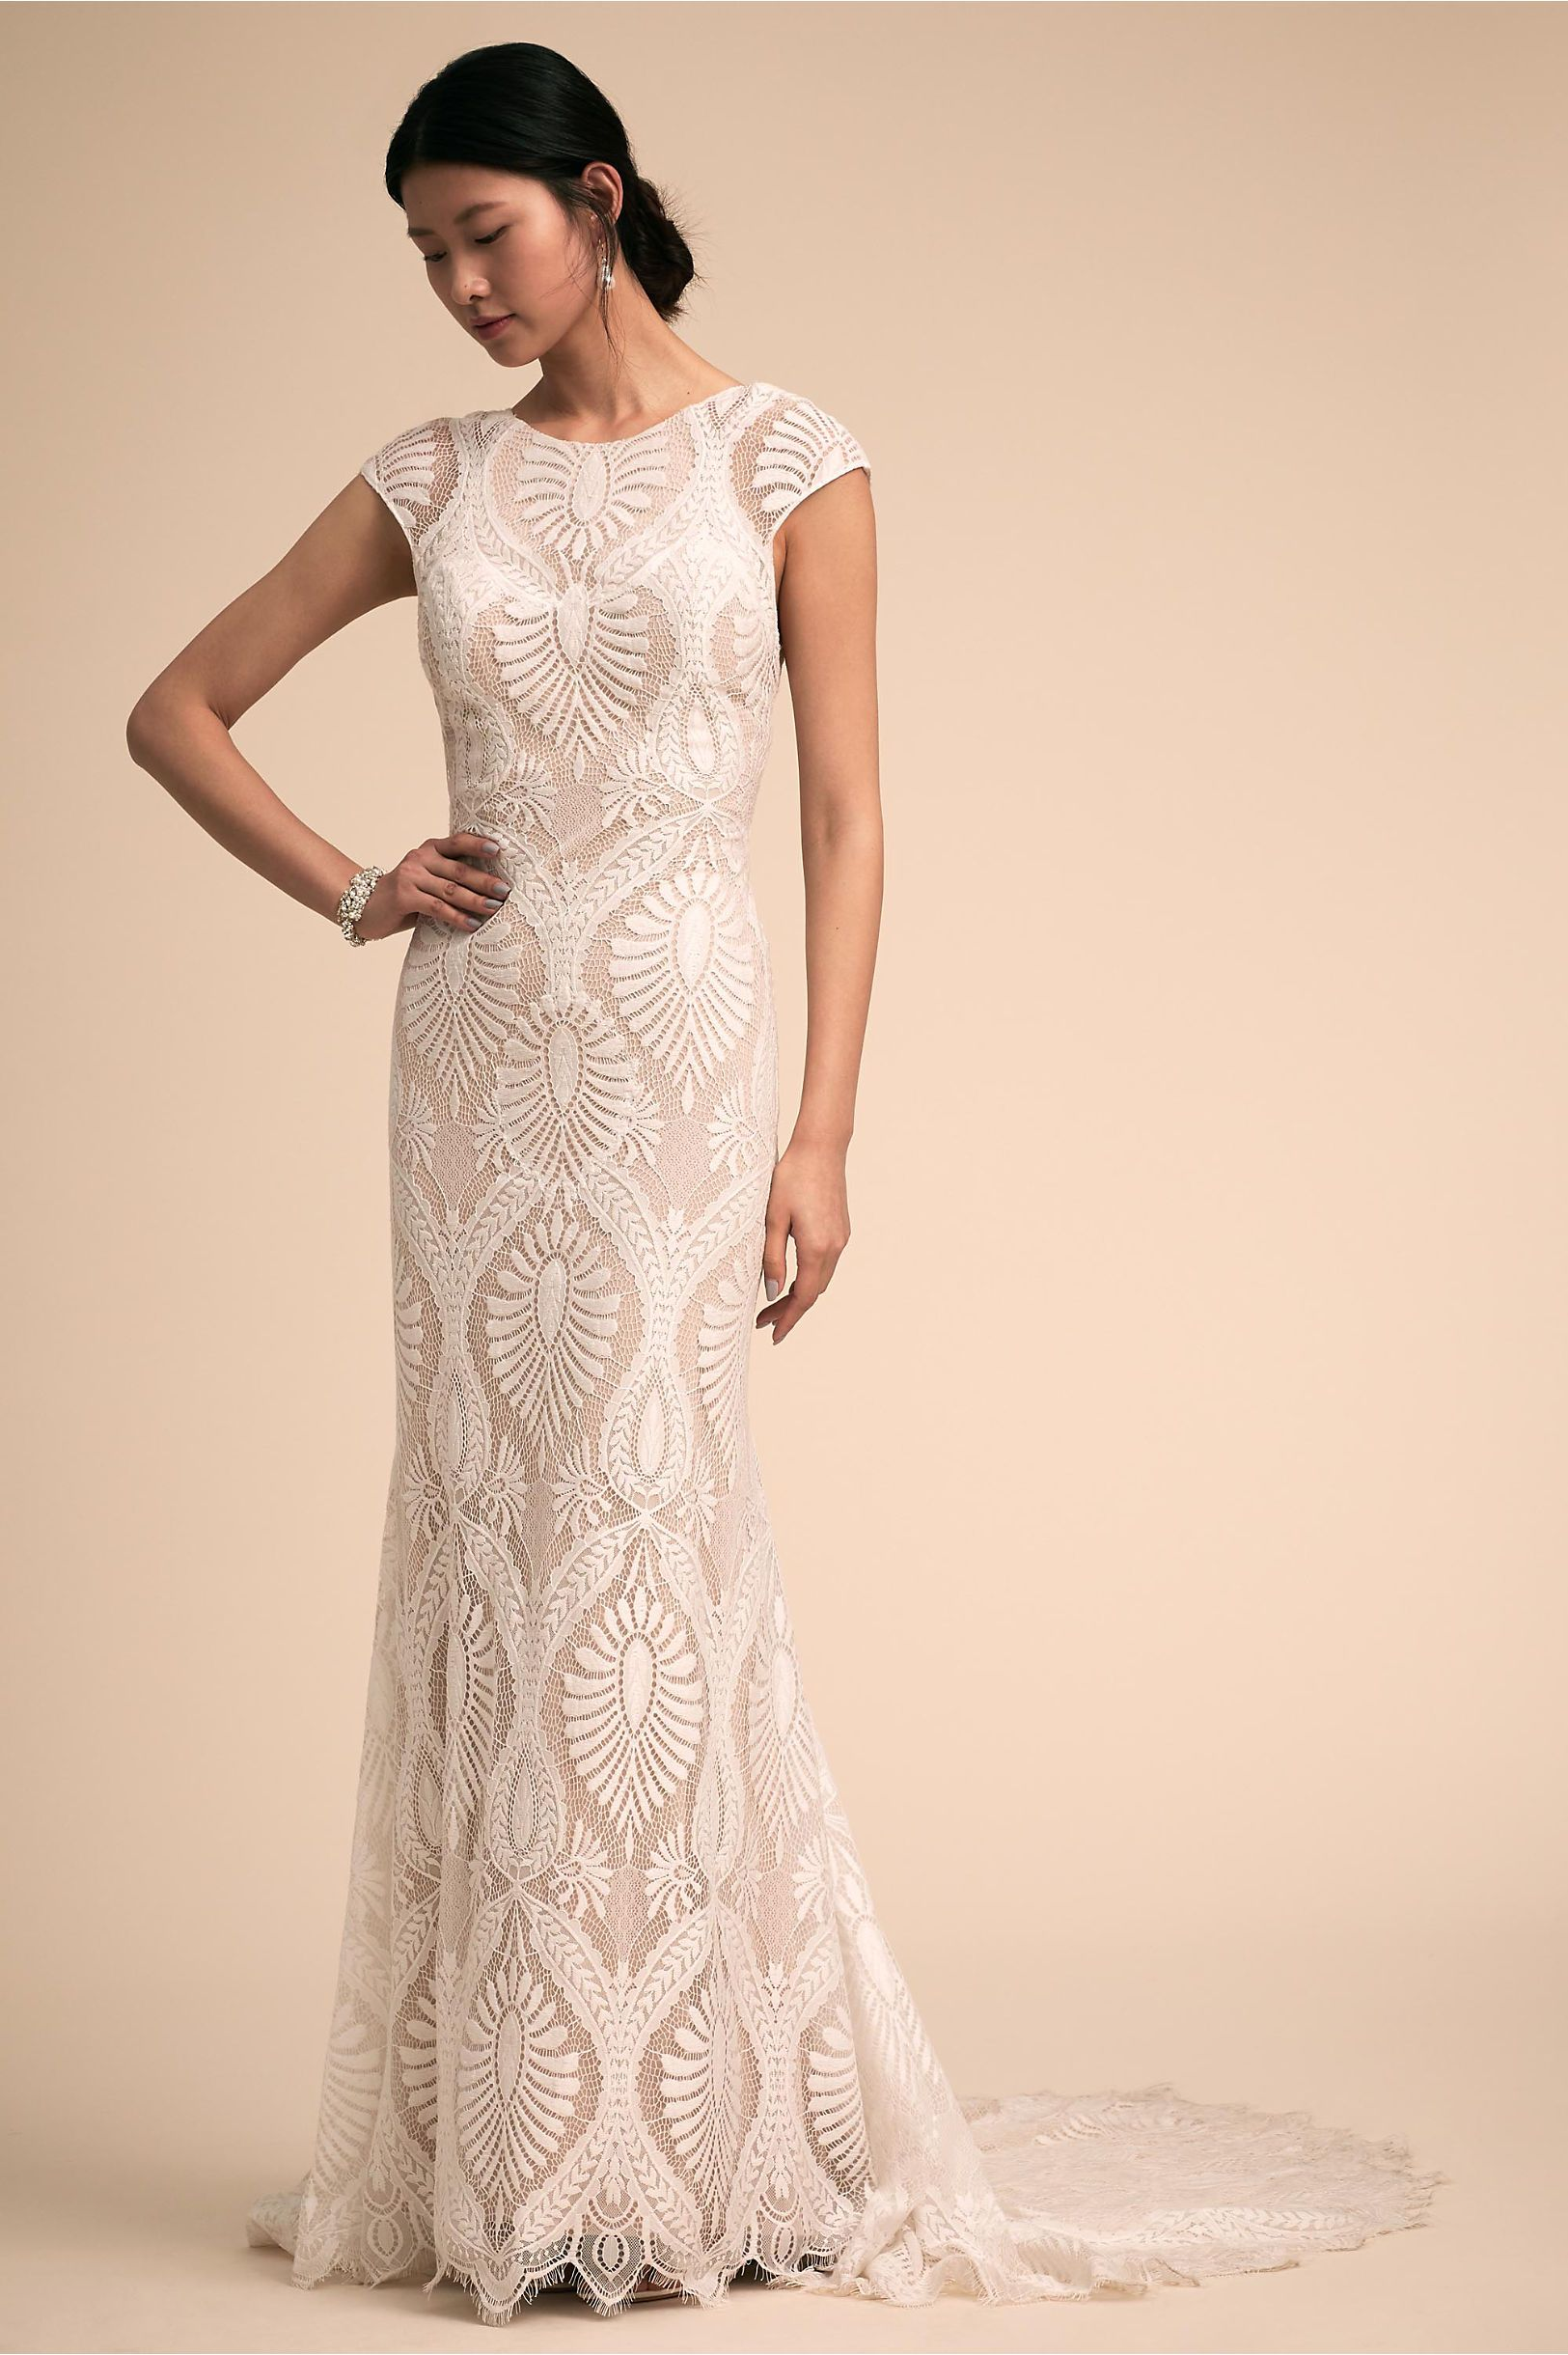 fce2443226748 BHLDN's Ludlow Gown in Nude/ivory. BHLDN's Ludlow Gown in Nude/ivory Boho  Wedding ...